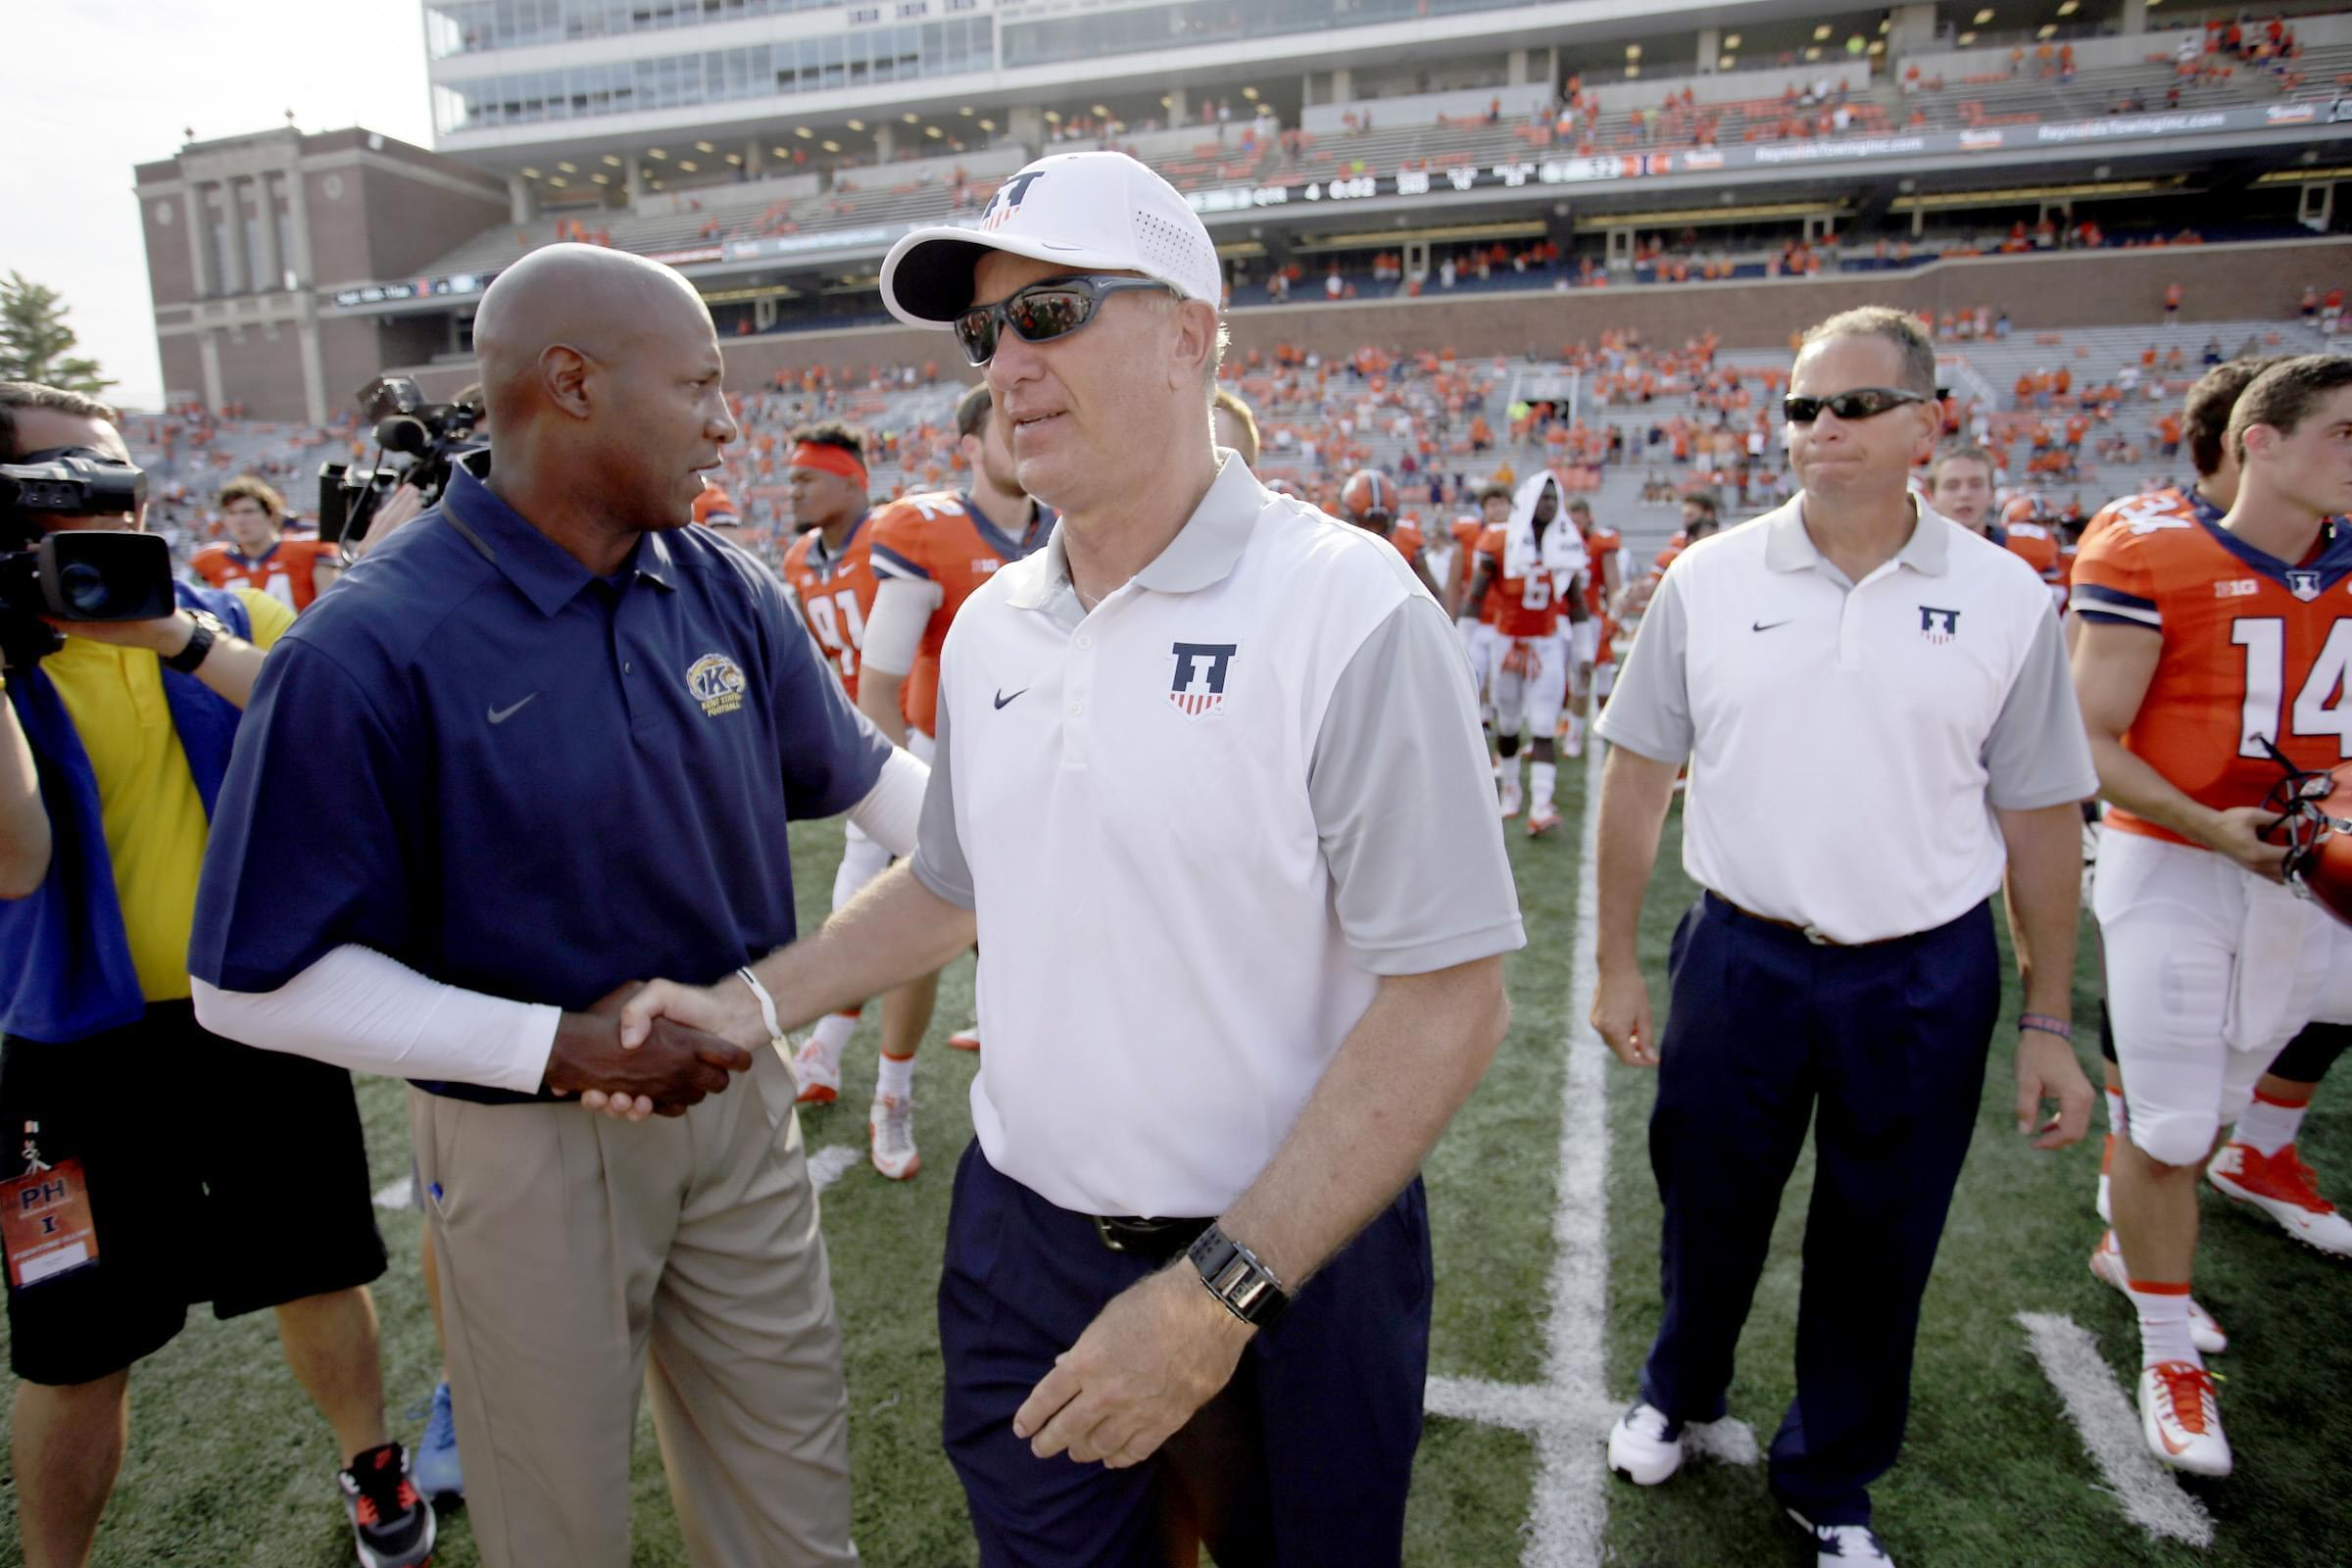 Illinois interim head coach Bill Cubit, right, shakes hands with Kent State head coach Paul Haynes at the end of Illinois' 52-3 victory Saturday in Champaign